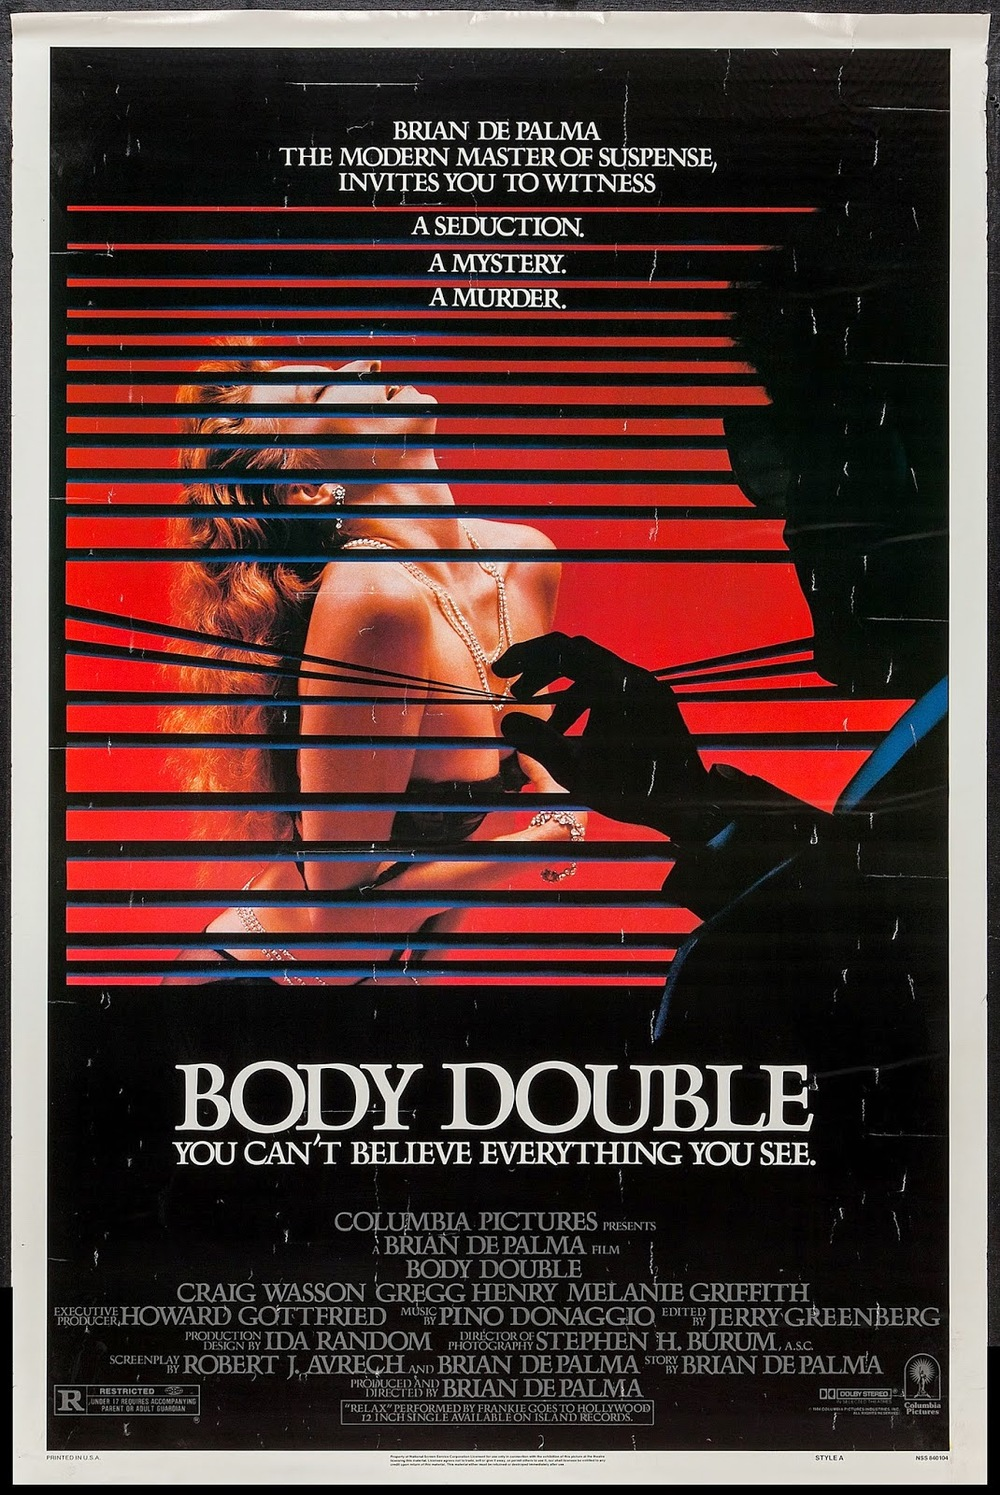 BODY DOUBLE - American Poster 1.jpeg